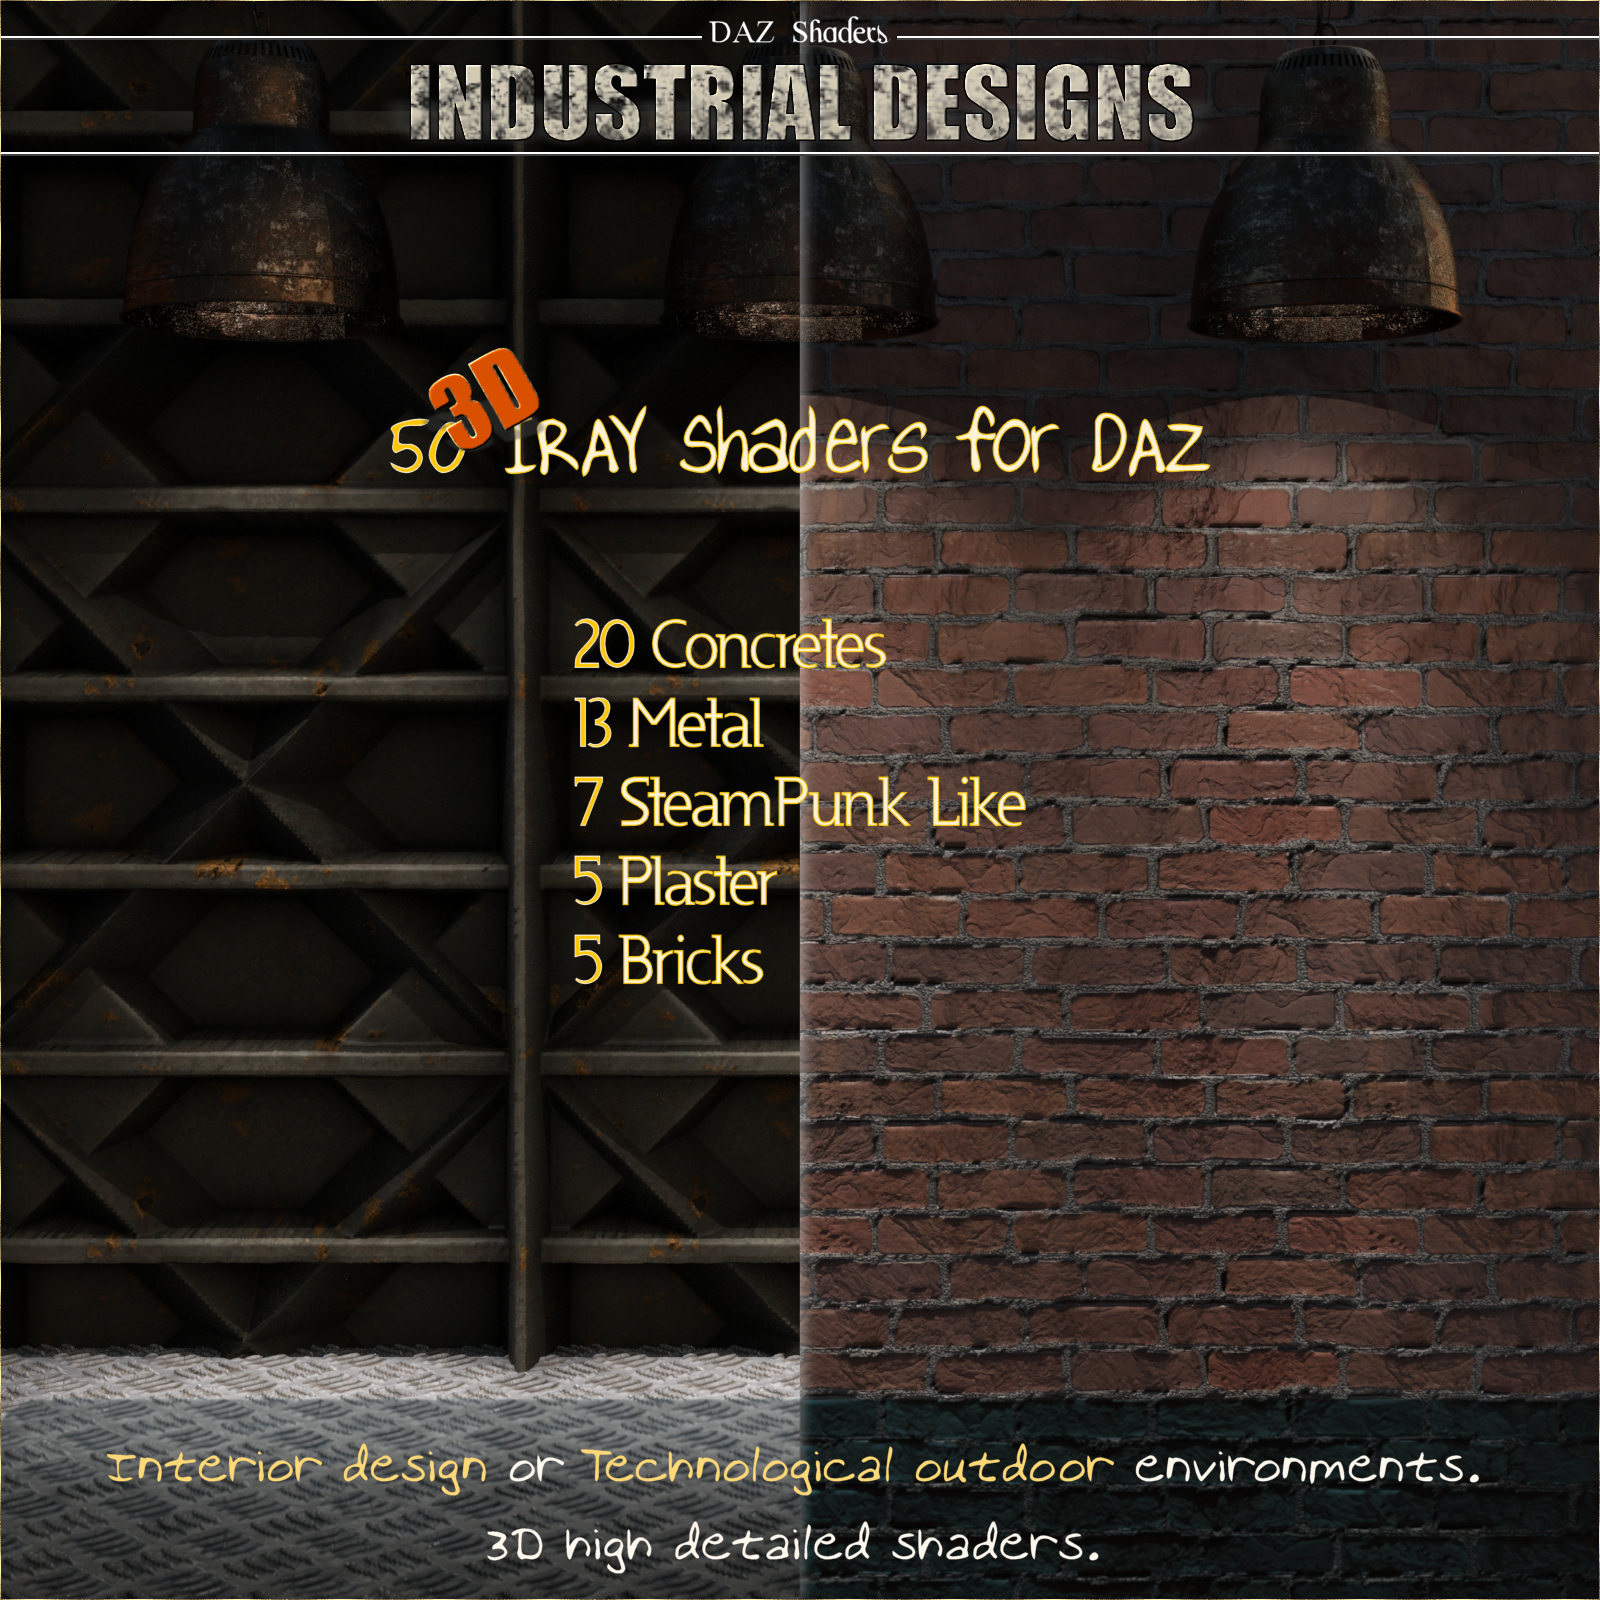 Industrial Designs - IRAY Shaders for DAZ